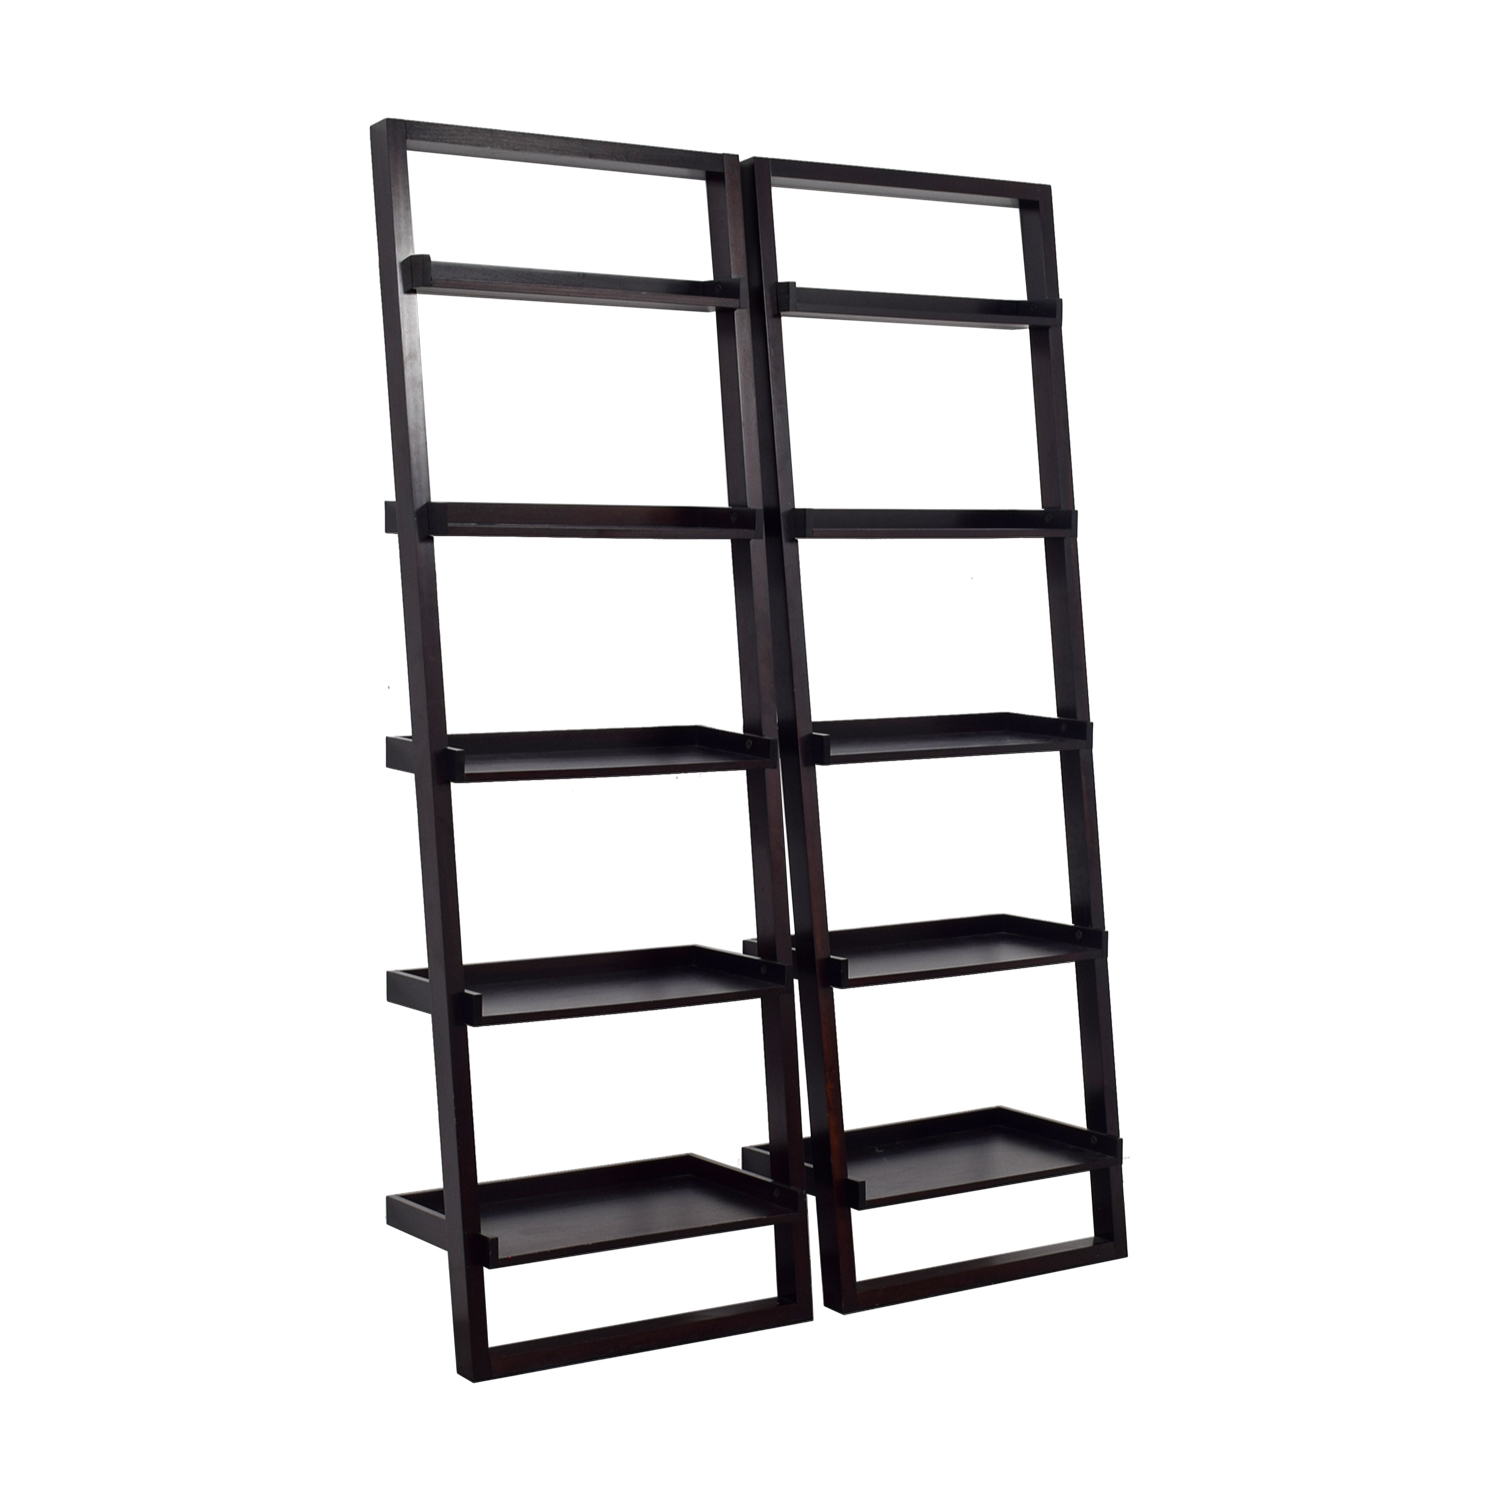 Crate & Barrel Crate & Barrel Sloane Black Leaning Bookshelf price